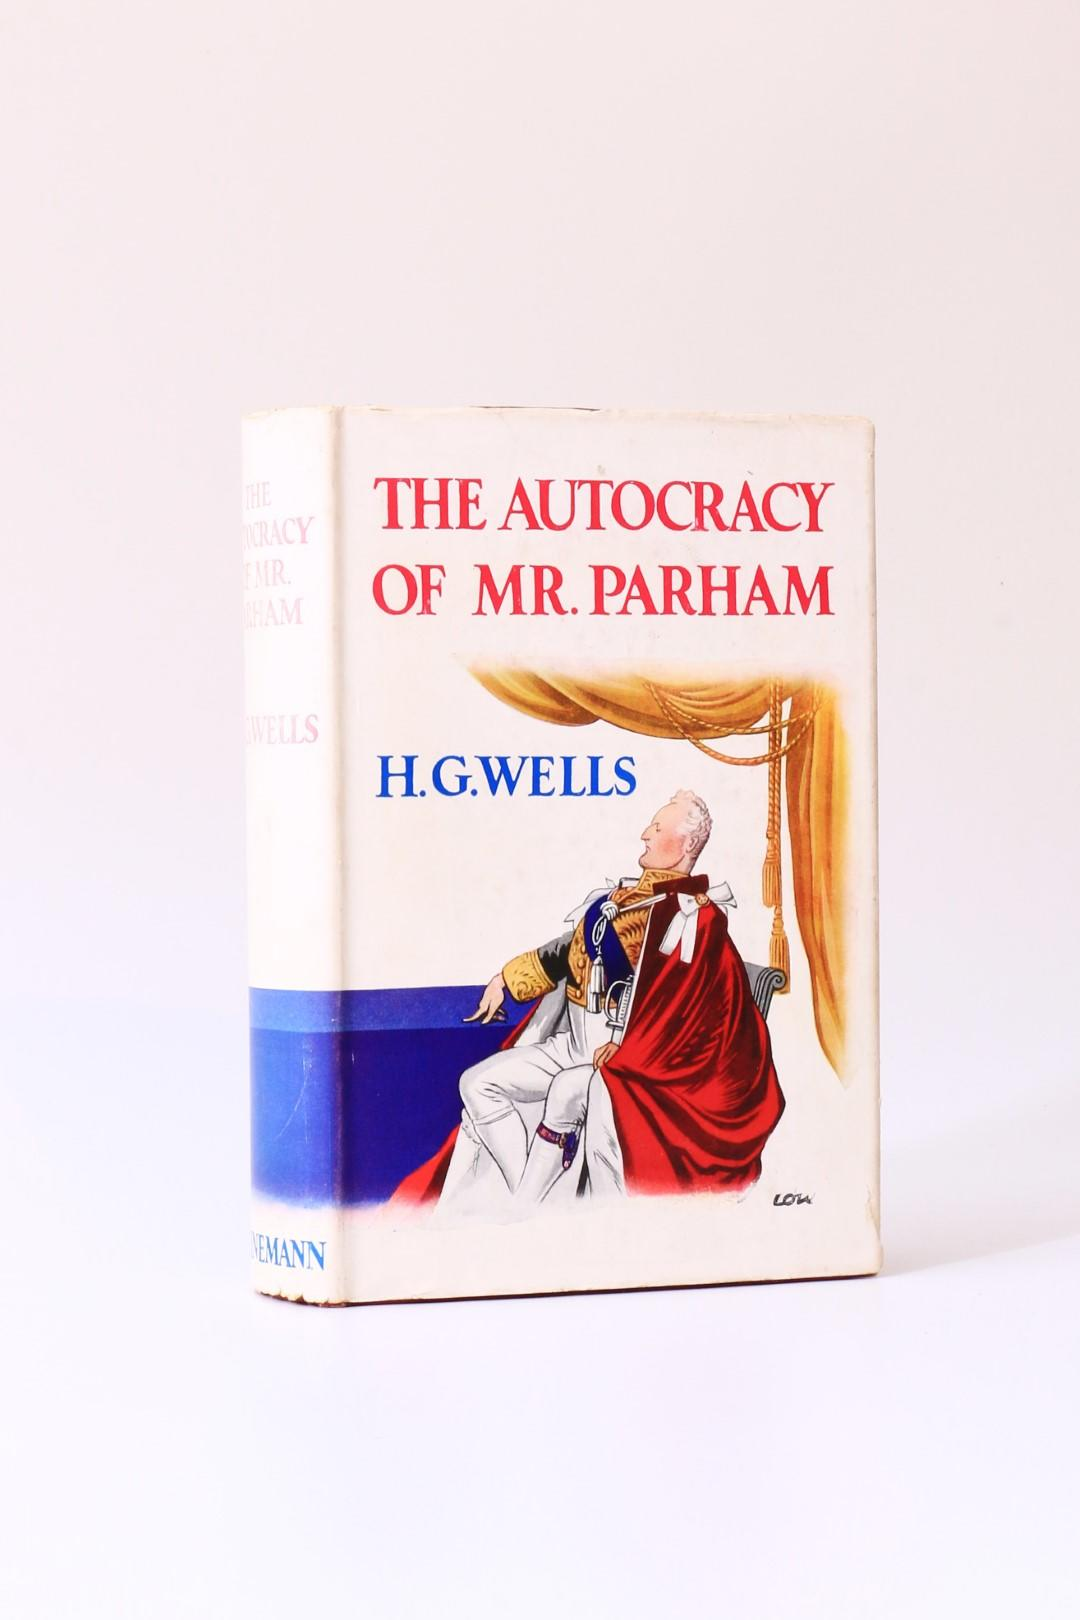 H.G. Wells - The Autocracy of Mr. Parham - Heinemann, 1930, Signed First Edition.